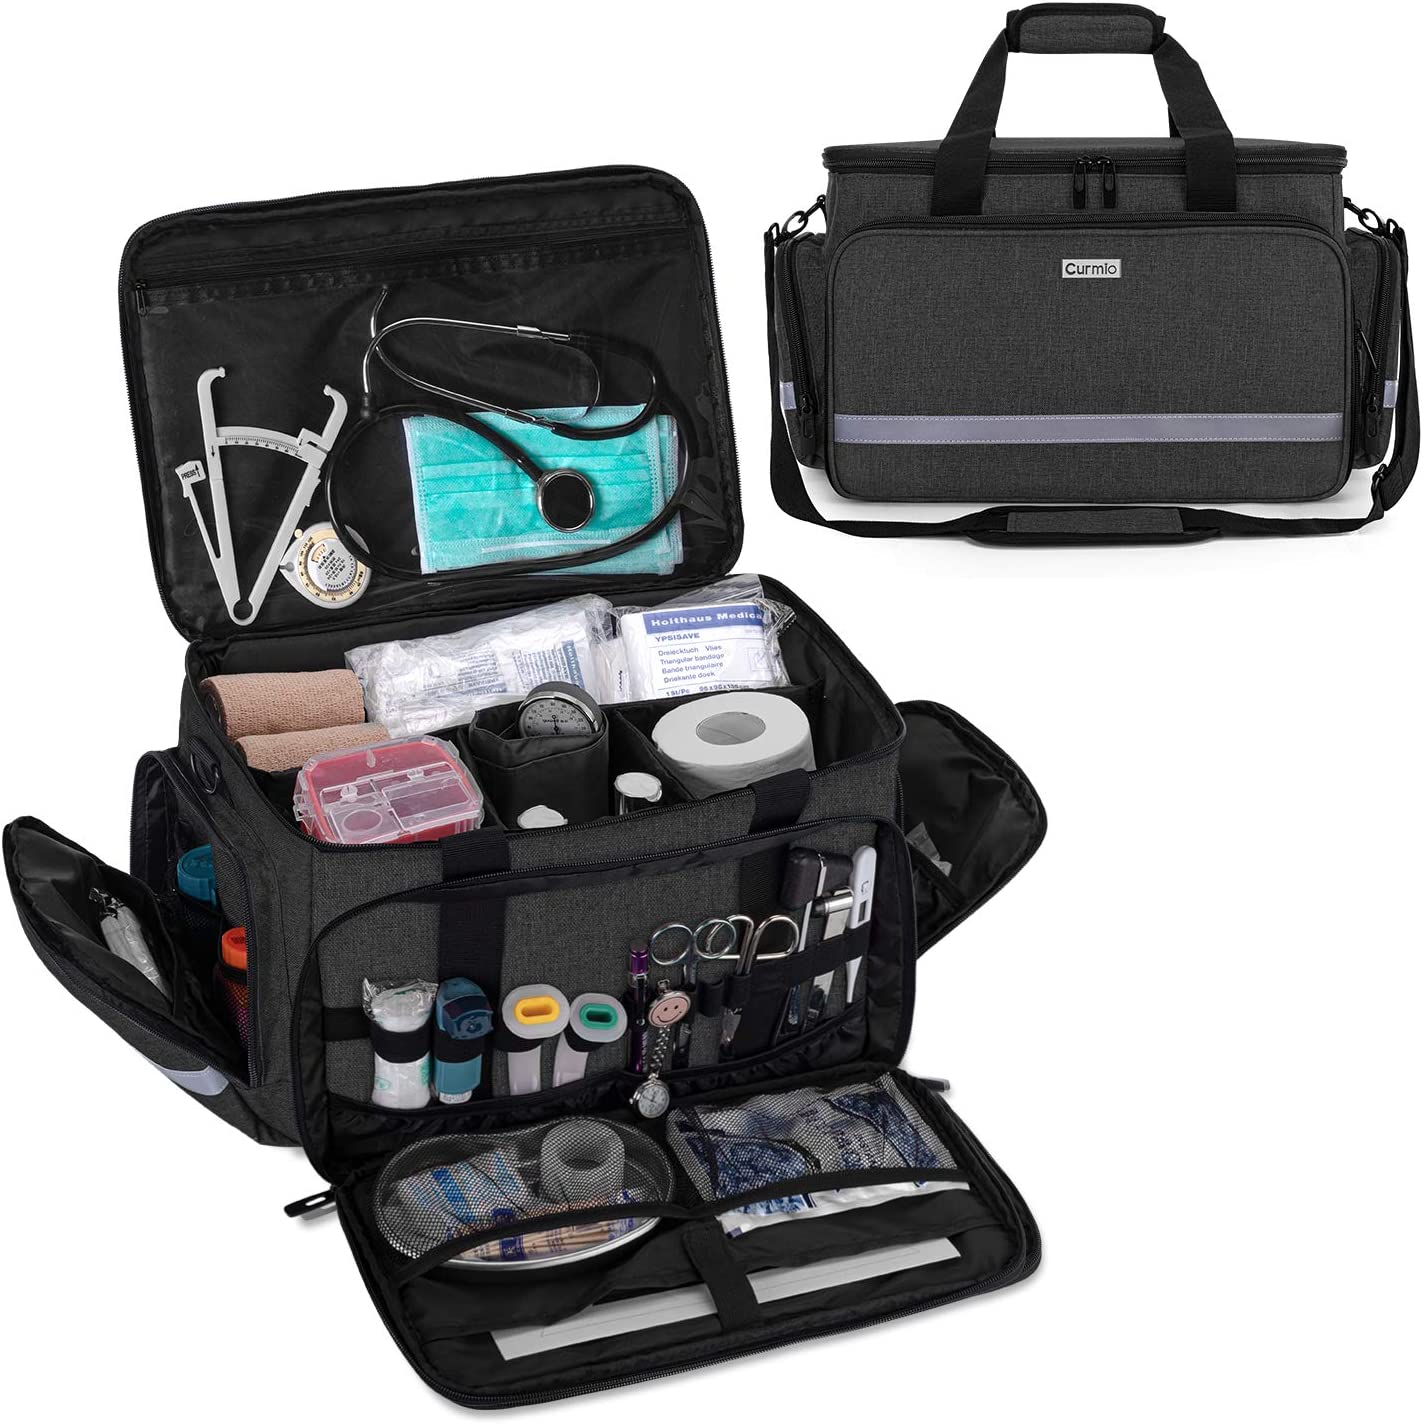 CURMIO Nurse Bag, Medical Bag Clinical Bag with Inner Dividers and No-Slip Bottom for Home Visits, Health Care, Hospice, Gift for Nursing Students, Physical Therapists, Doctors,Black